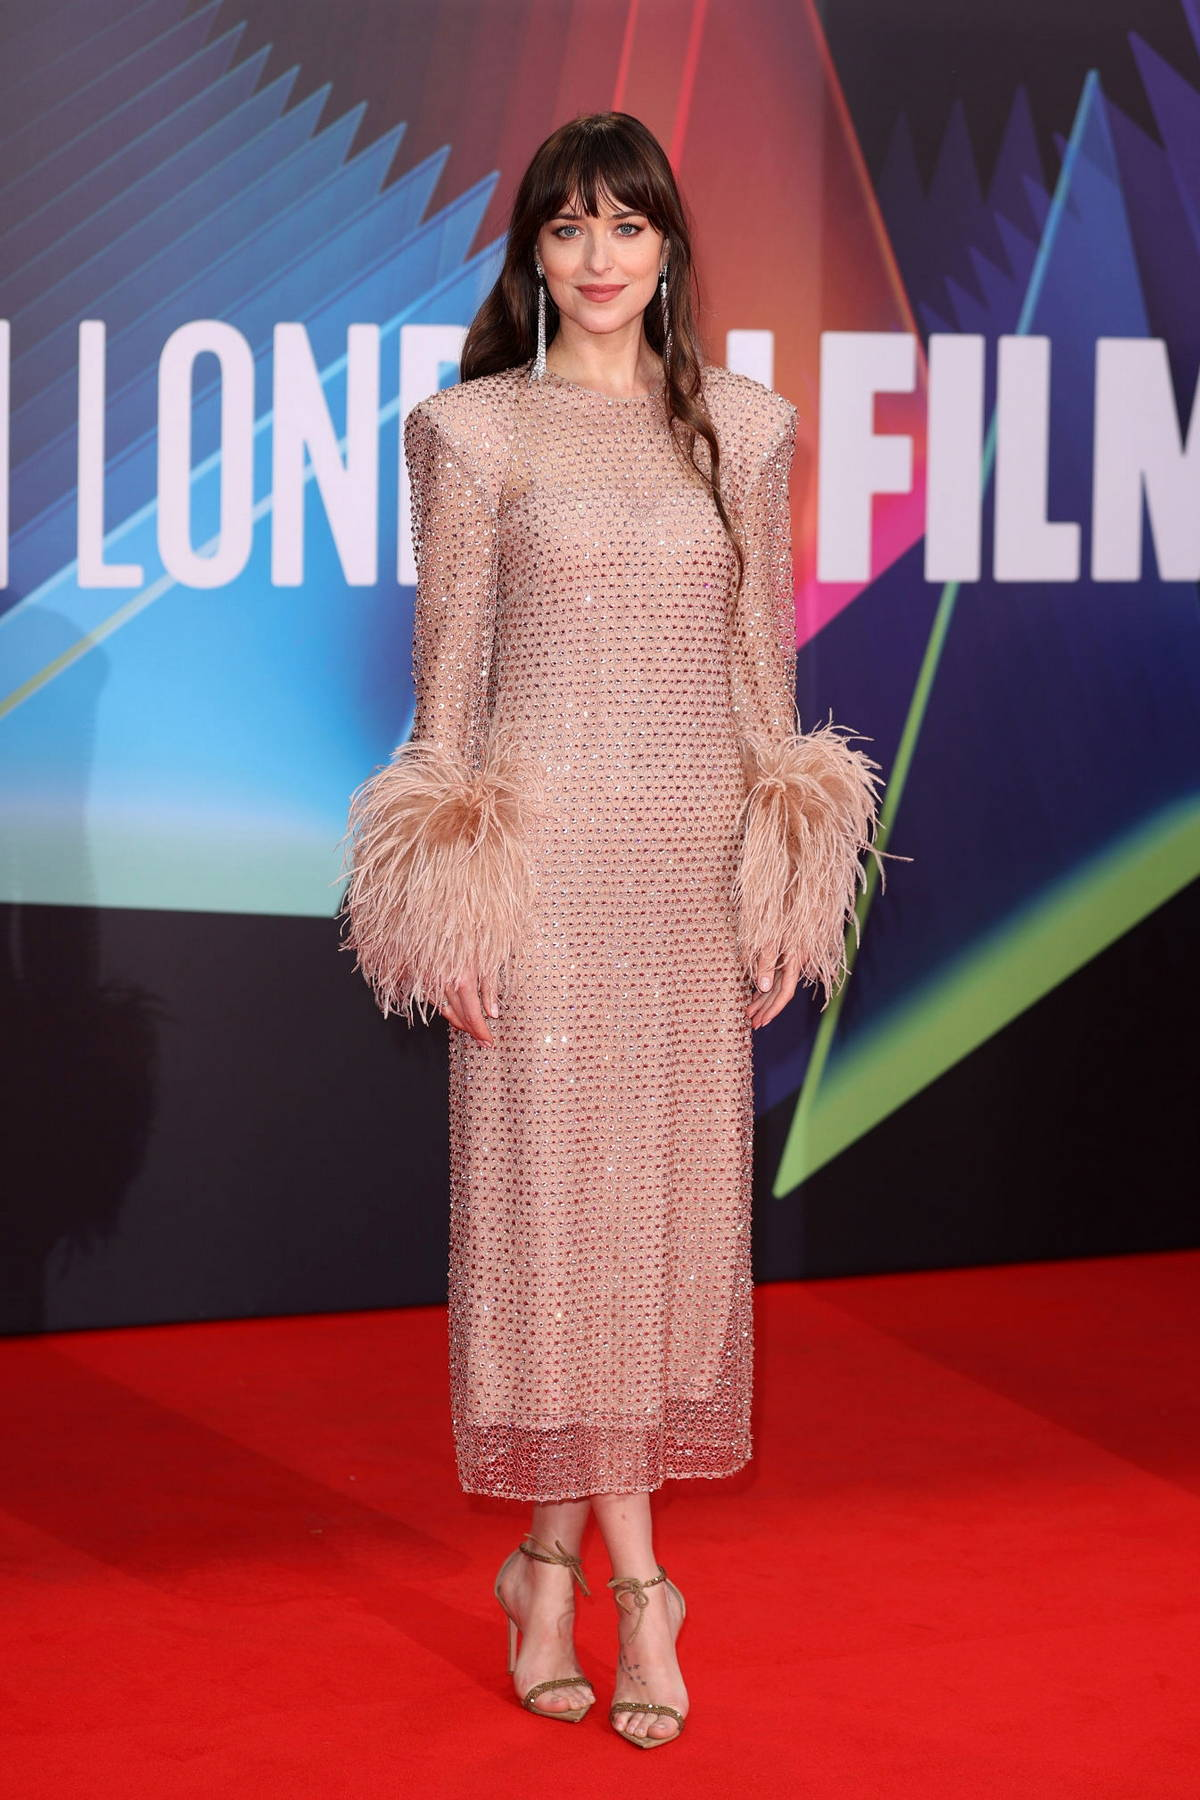 Dakota Johnson attends the Premiere of 'The Lost Daughter' during the 65th BFI London Film Festival in London, UK